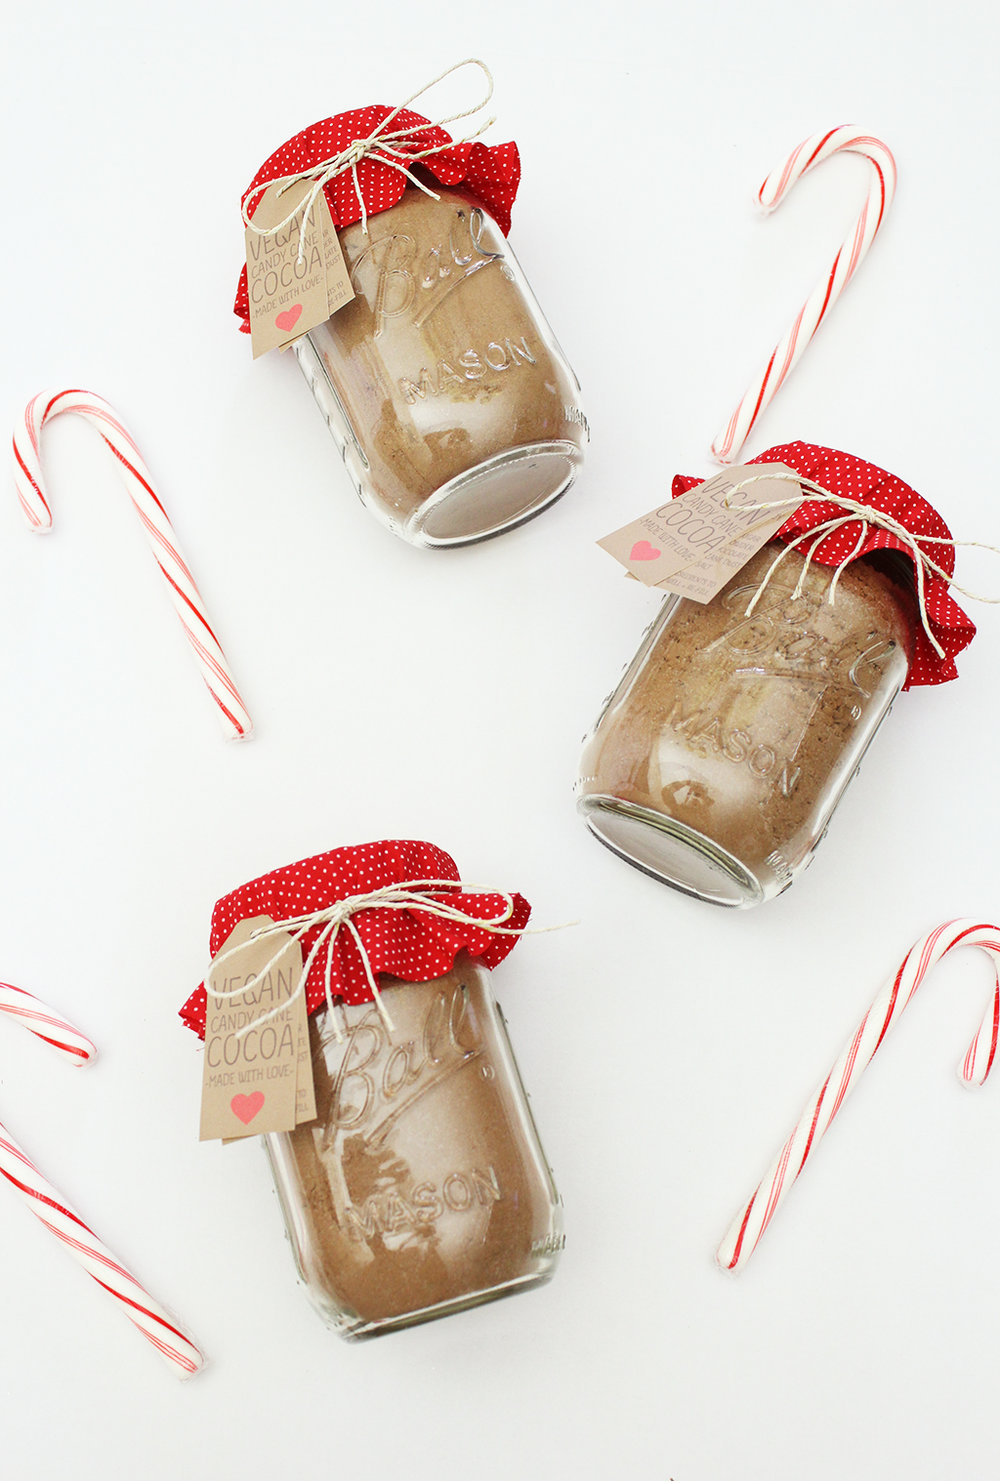 Vegan Candy Cane Cocoa Mix Jars